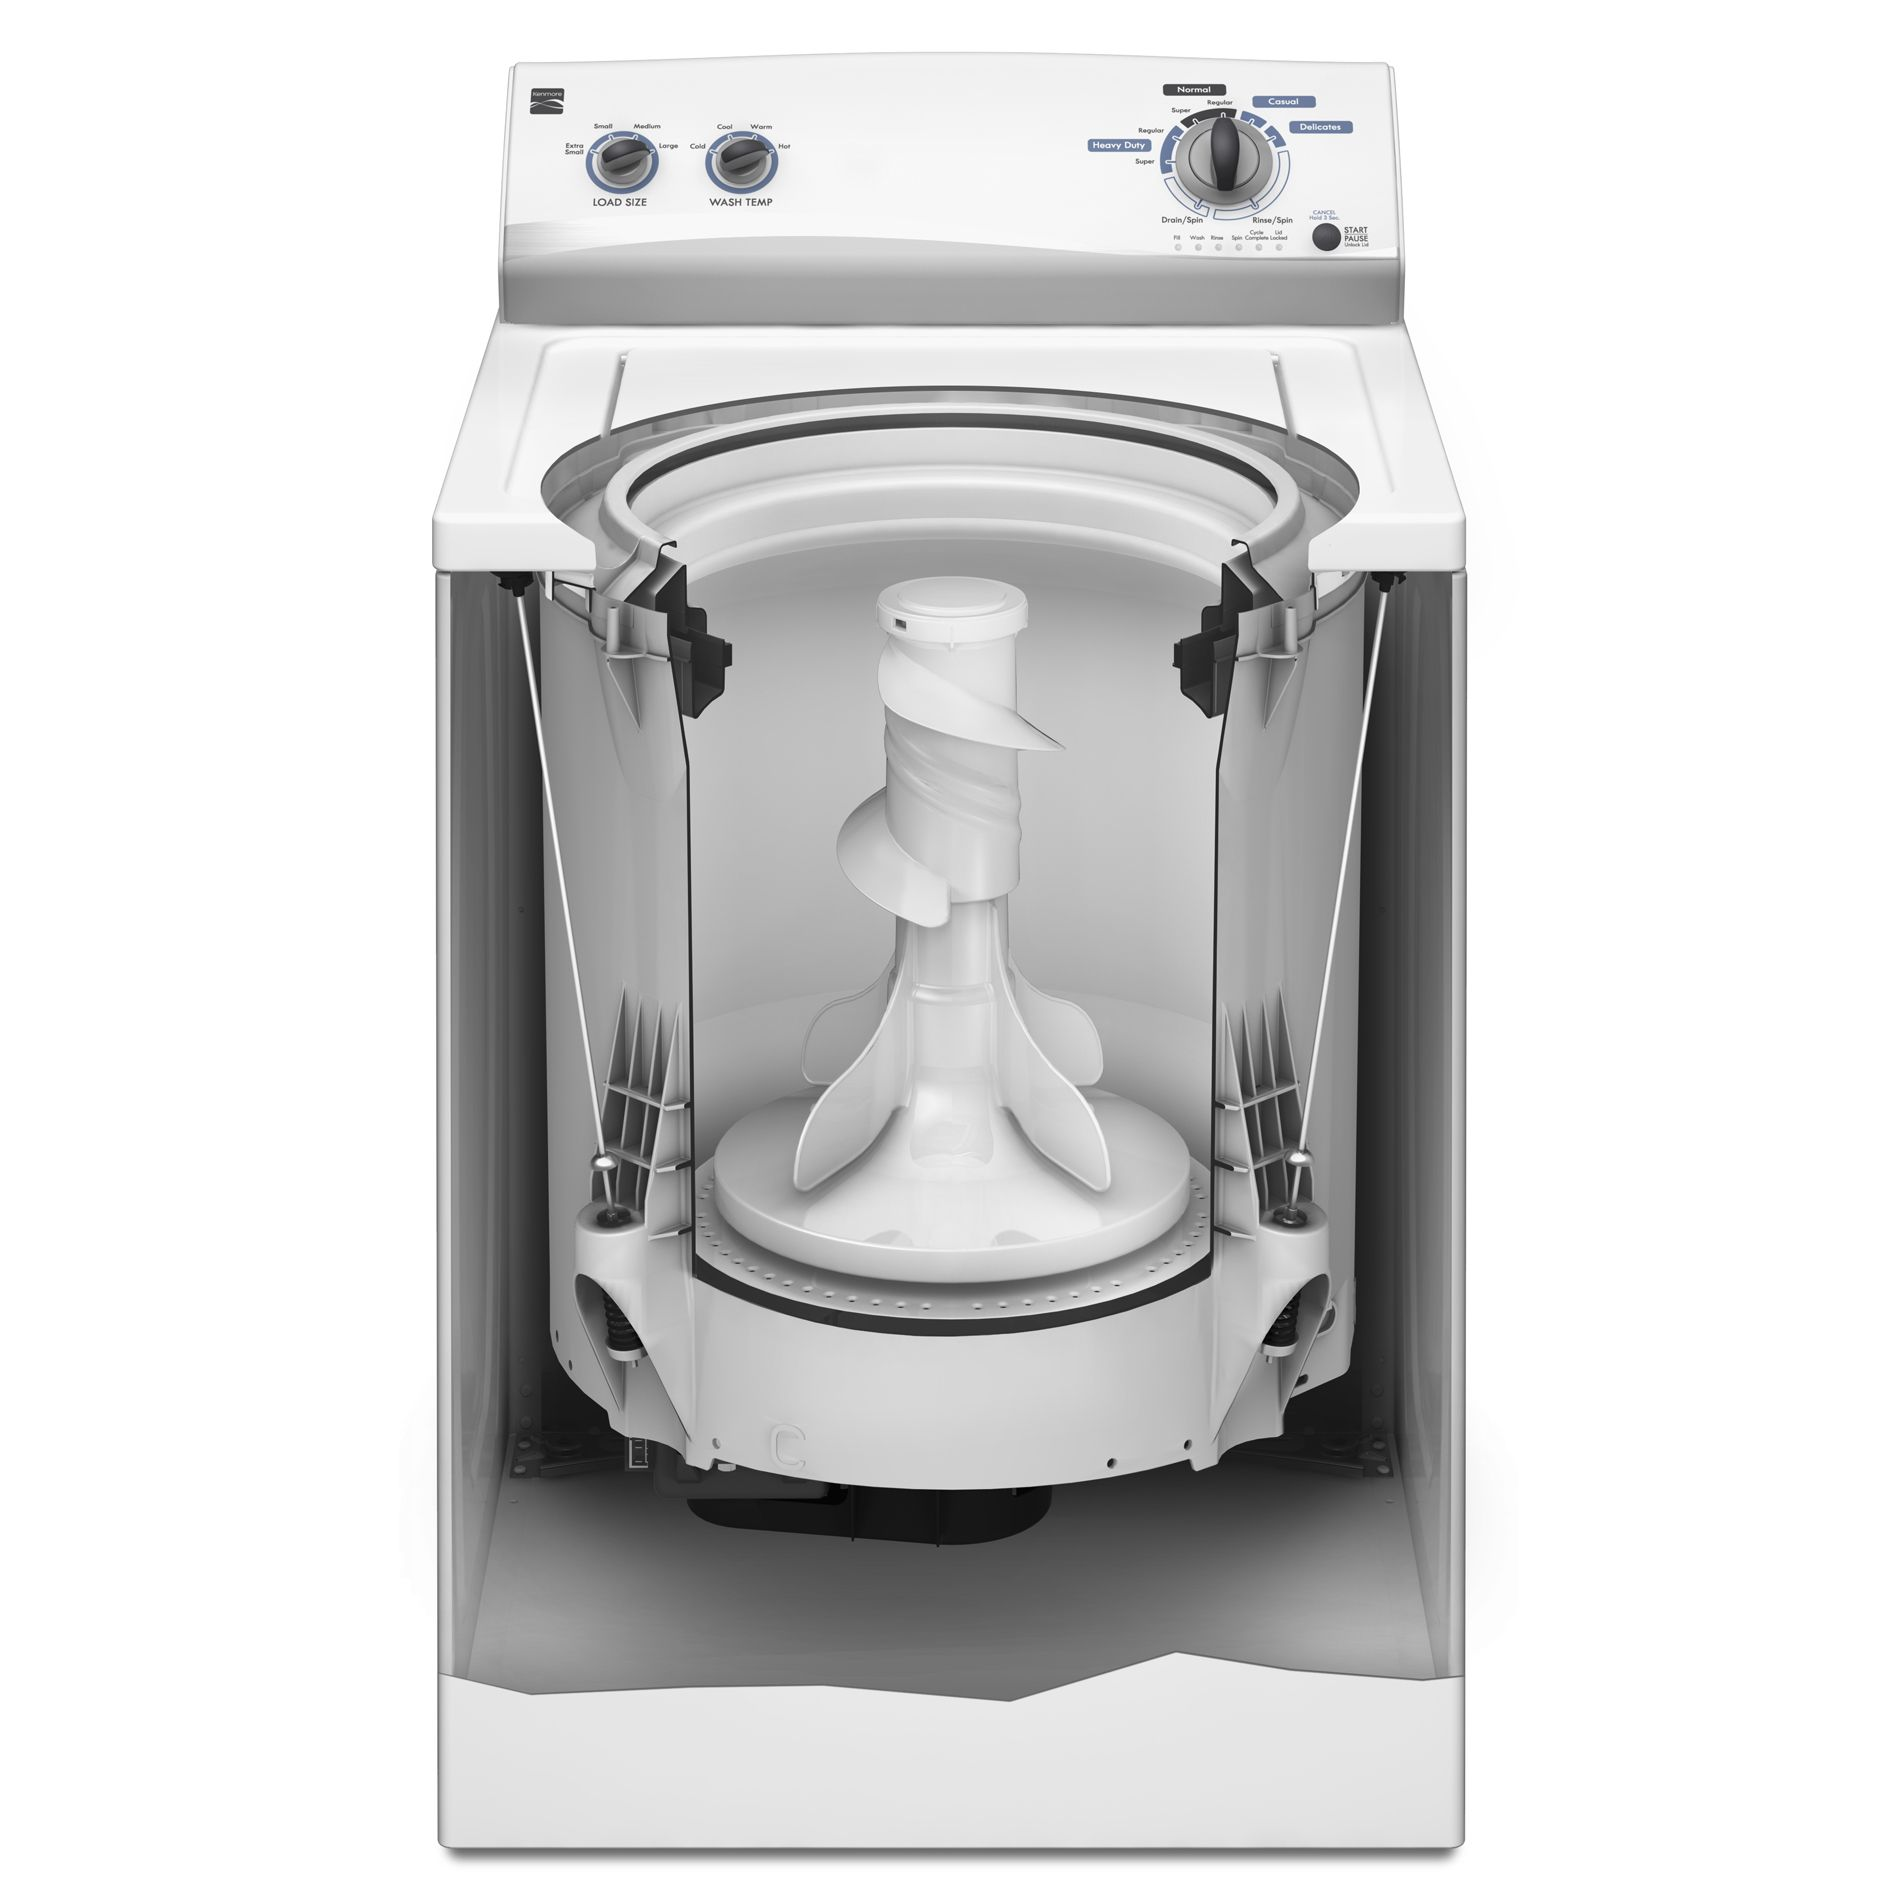 Kenmore 3.4 cu. ft. Top-Load Washing Machine - White